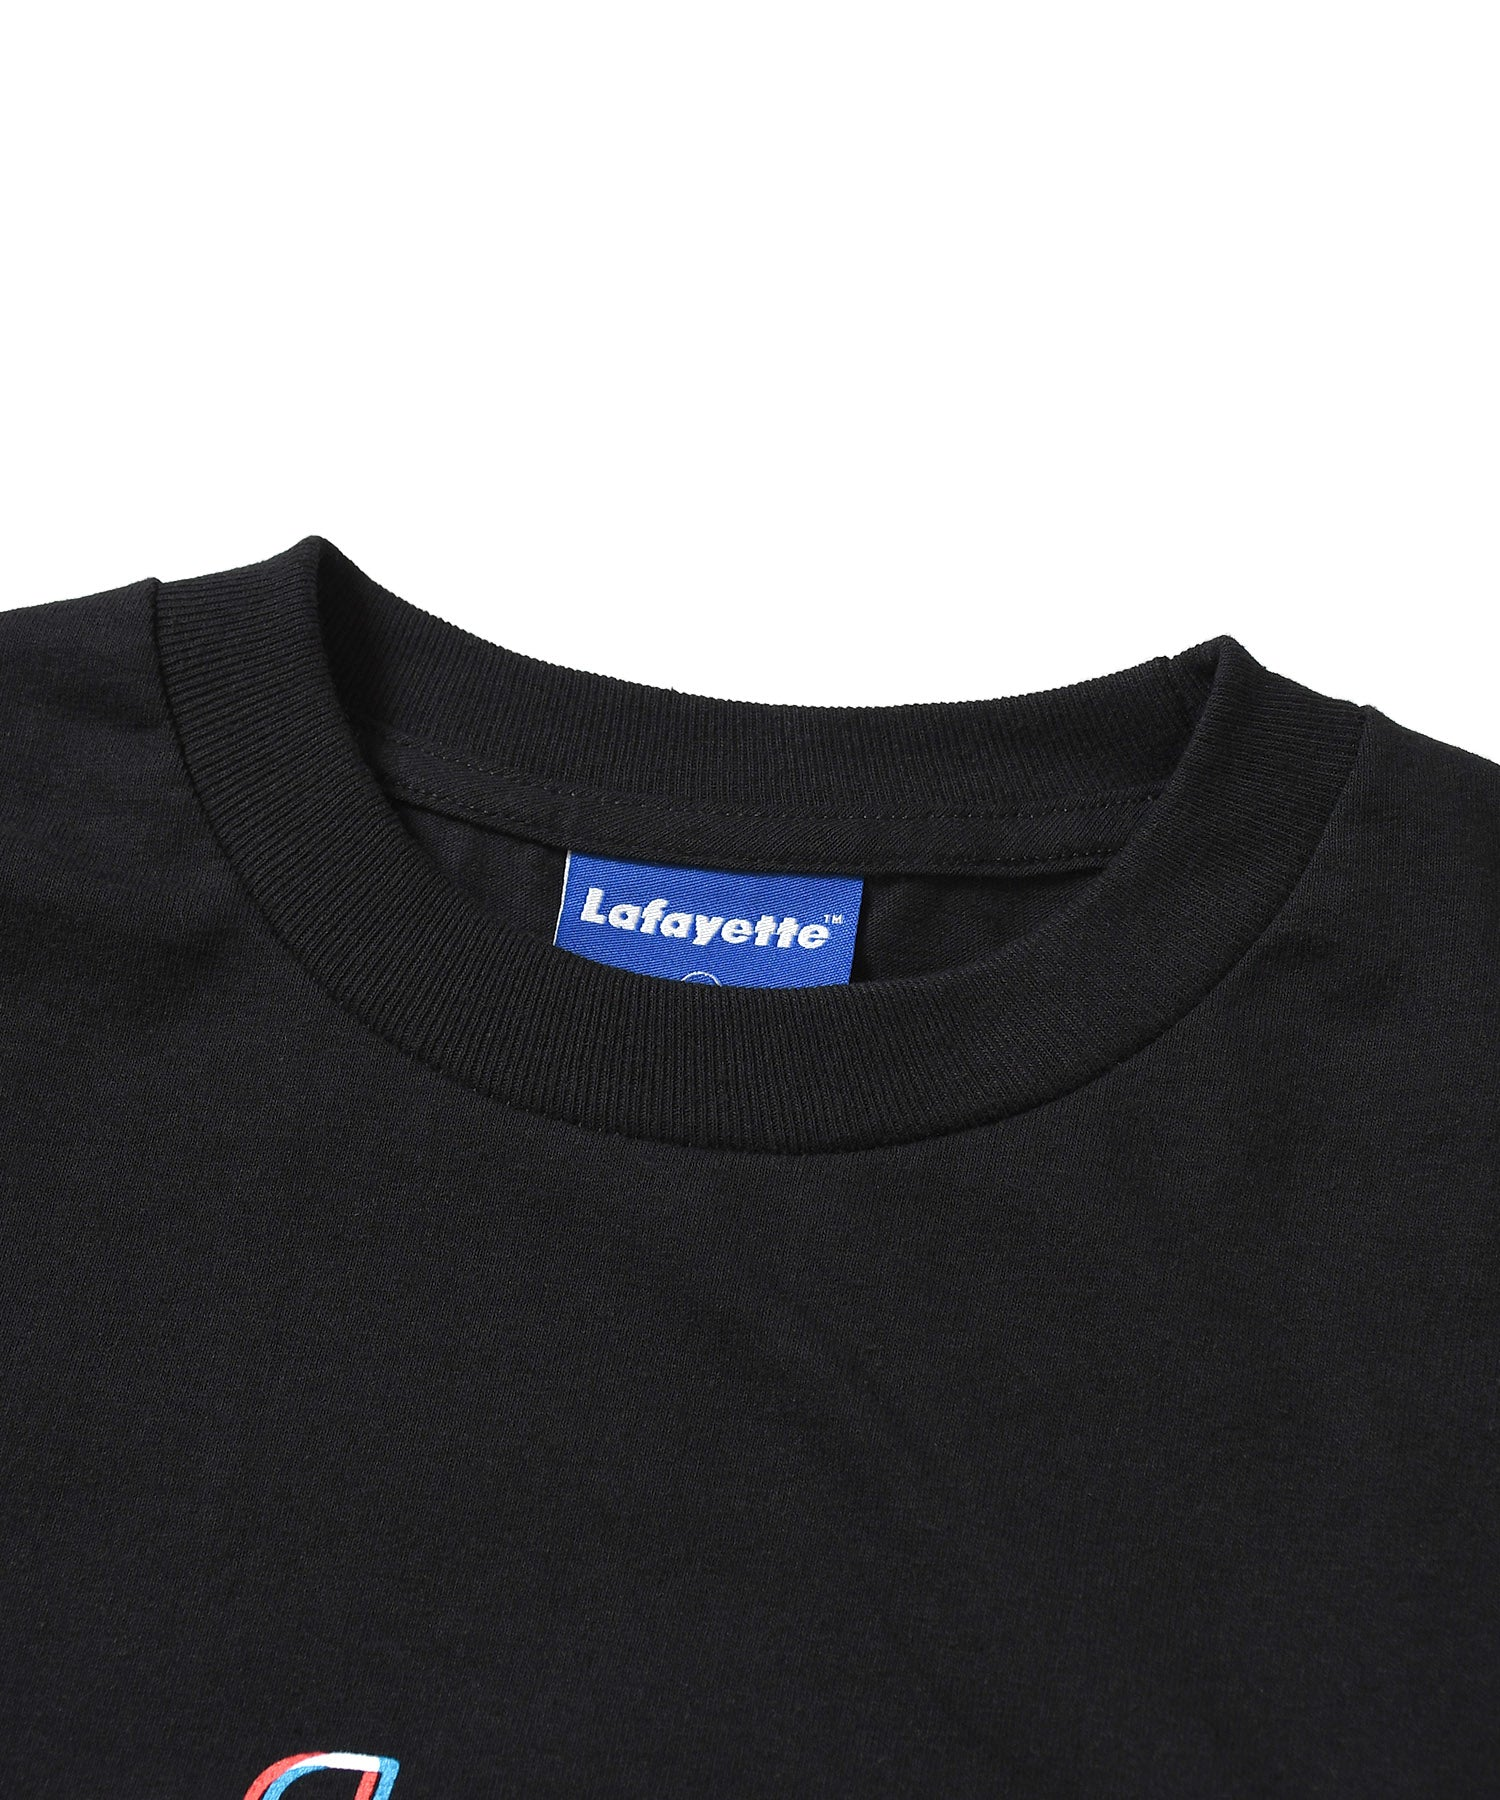 Lafayette ANAGLYPH LOGO TEE #BESTOF_LF_TEE Re-PRODUCTION LE200110